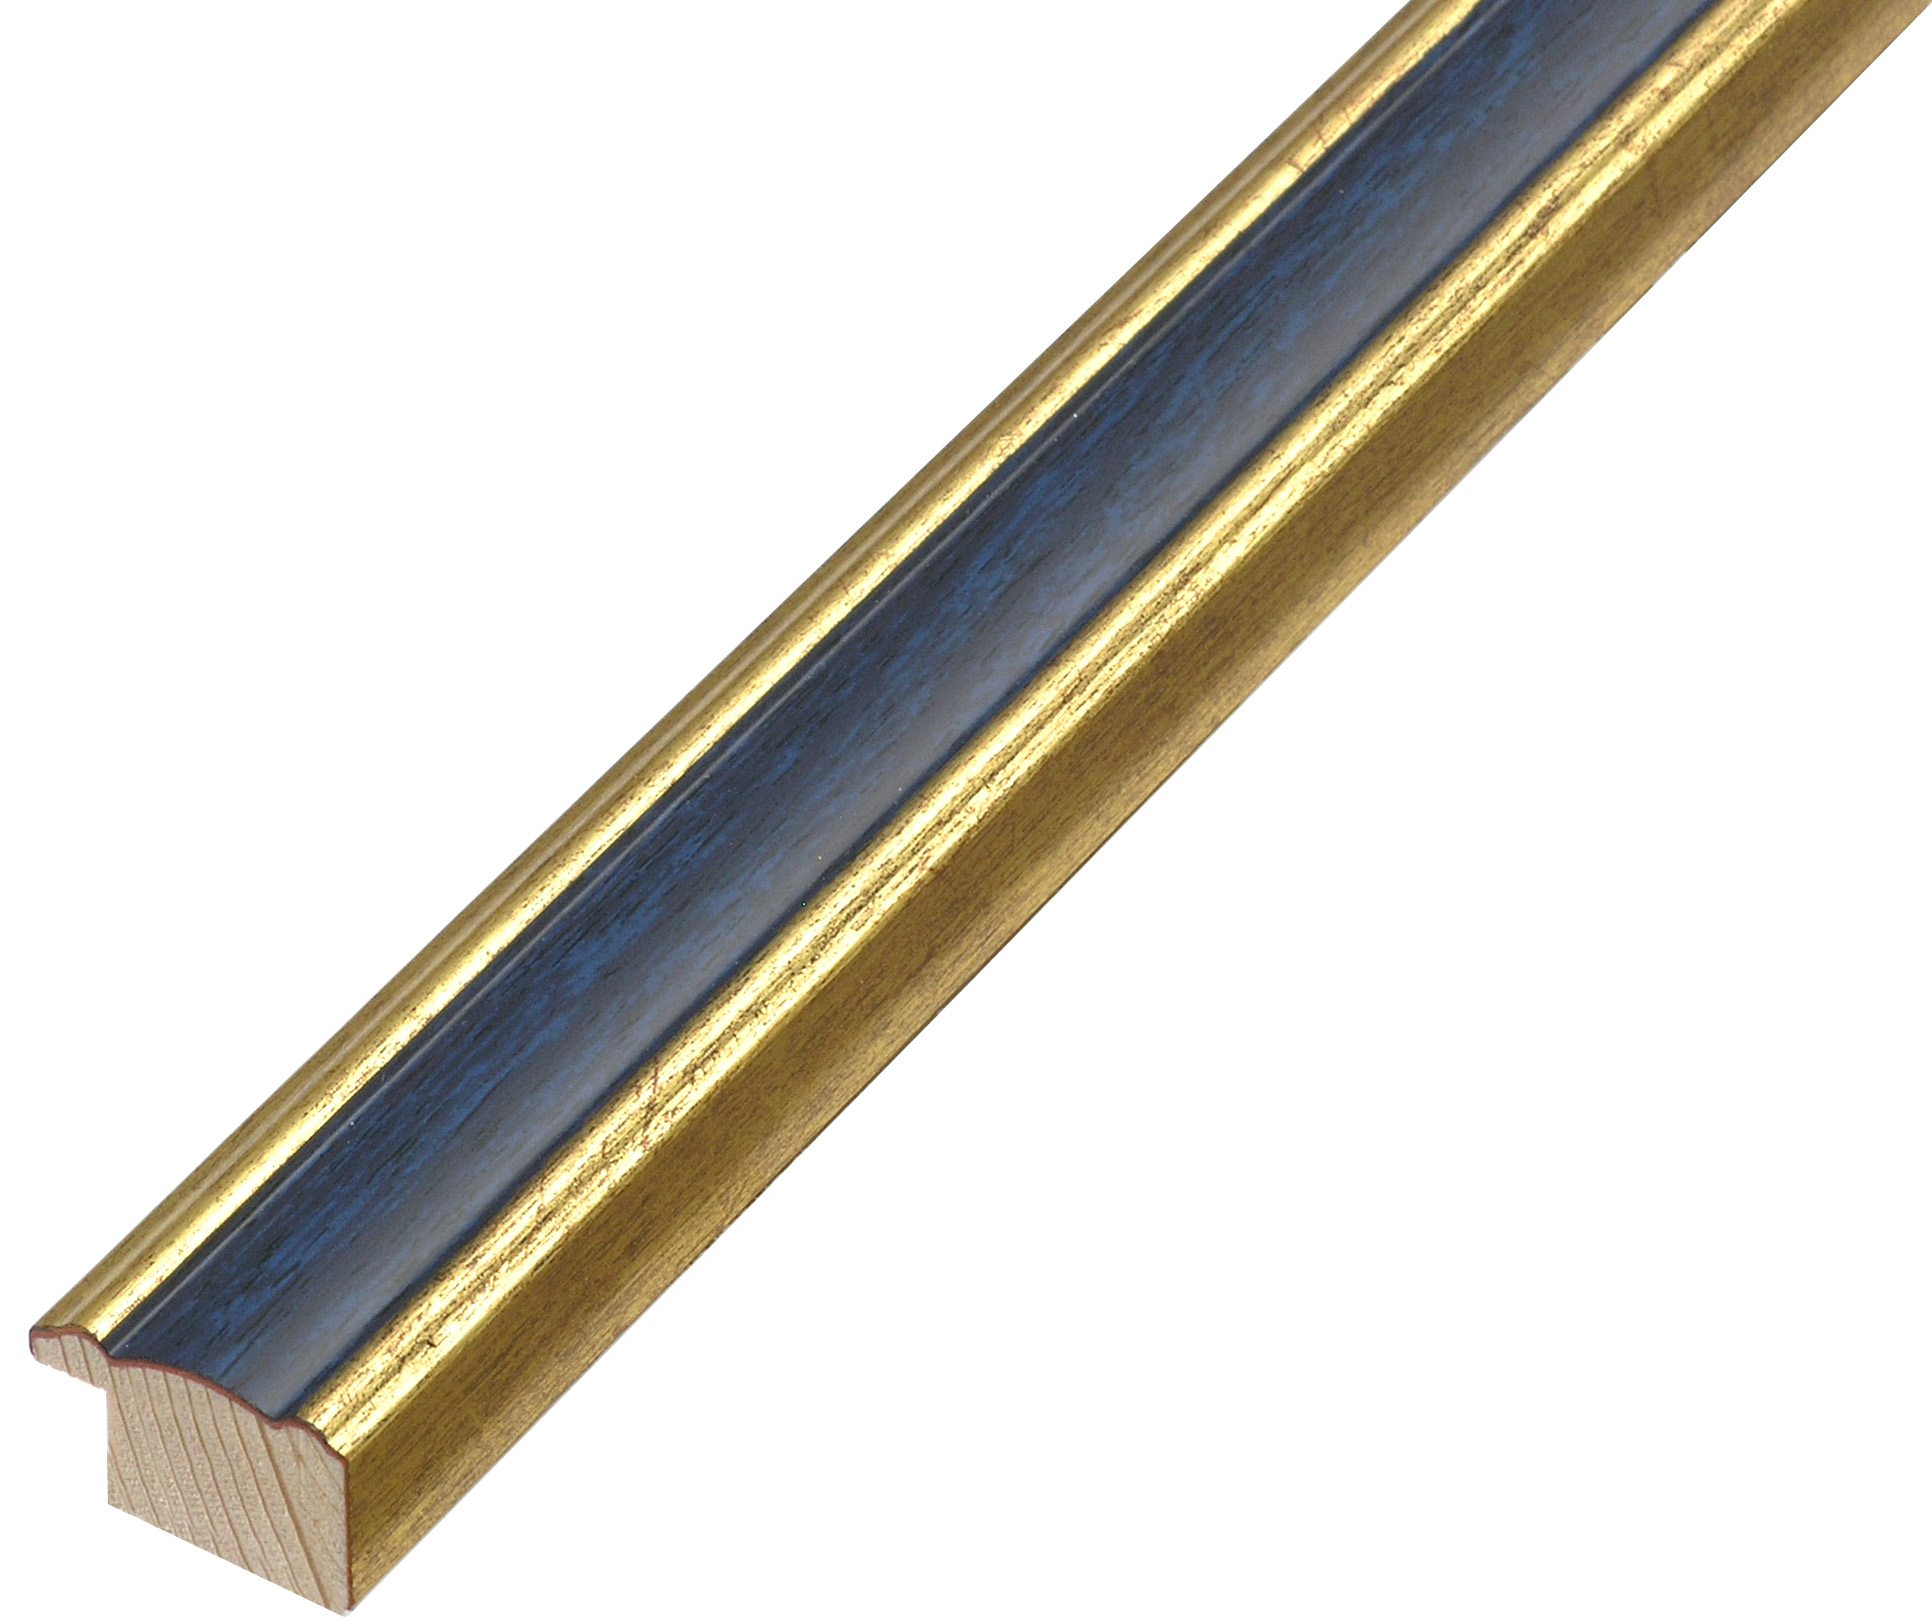 Moulding ayous - Width 23mm - Gold with blue band